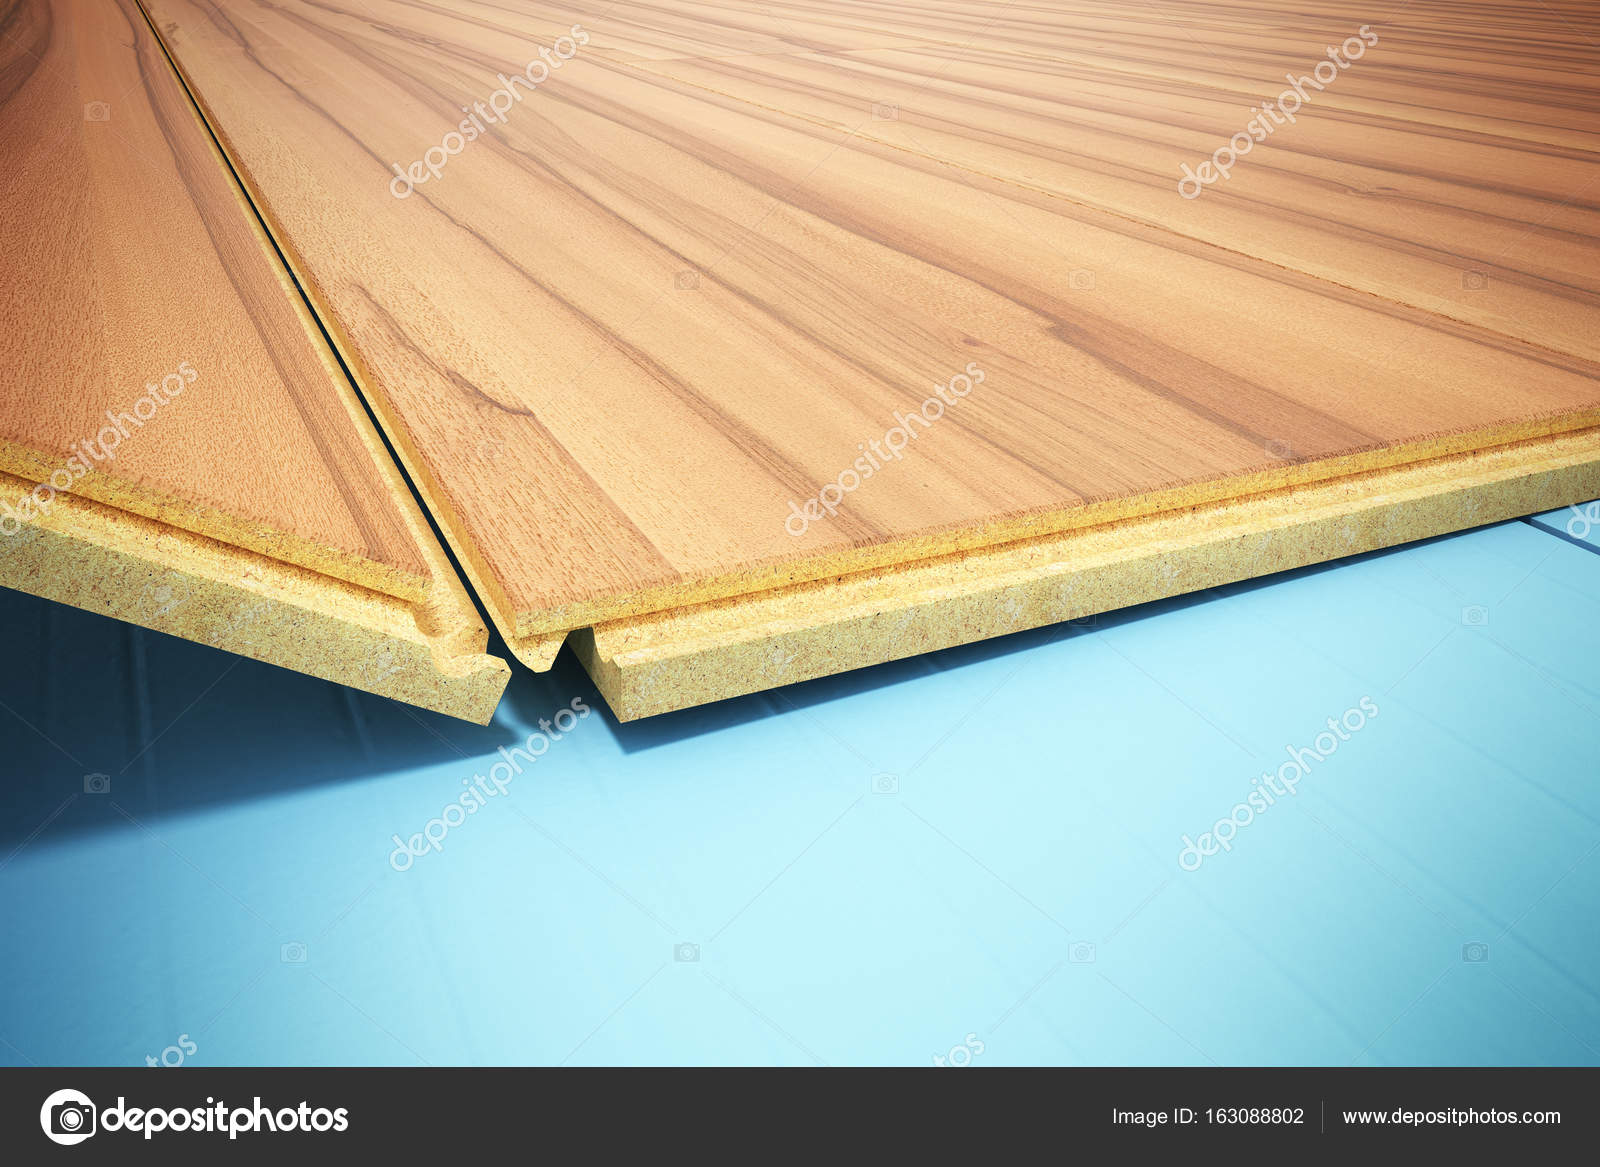 Installing Wooden Laminate Flooring With Insulation And Soundpro Stock Photo